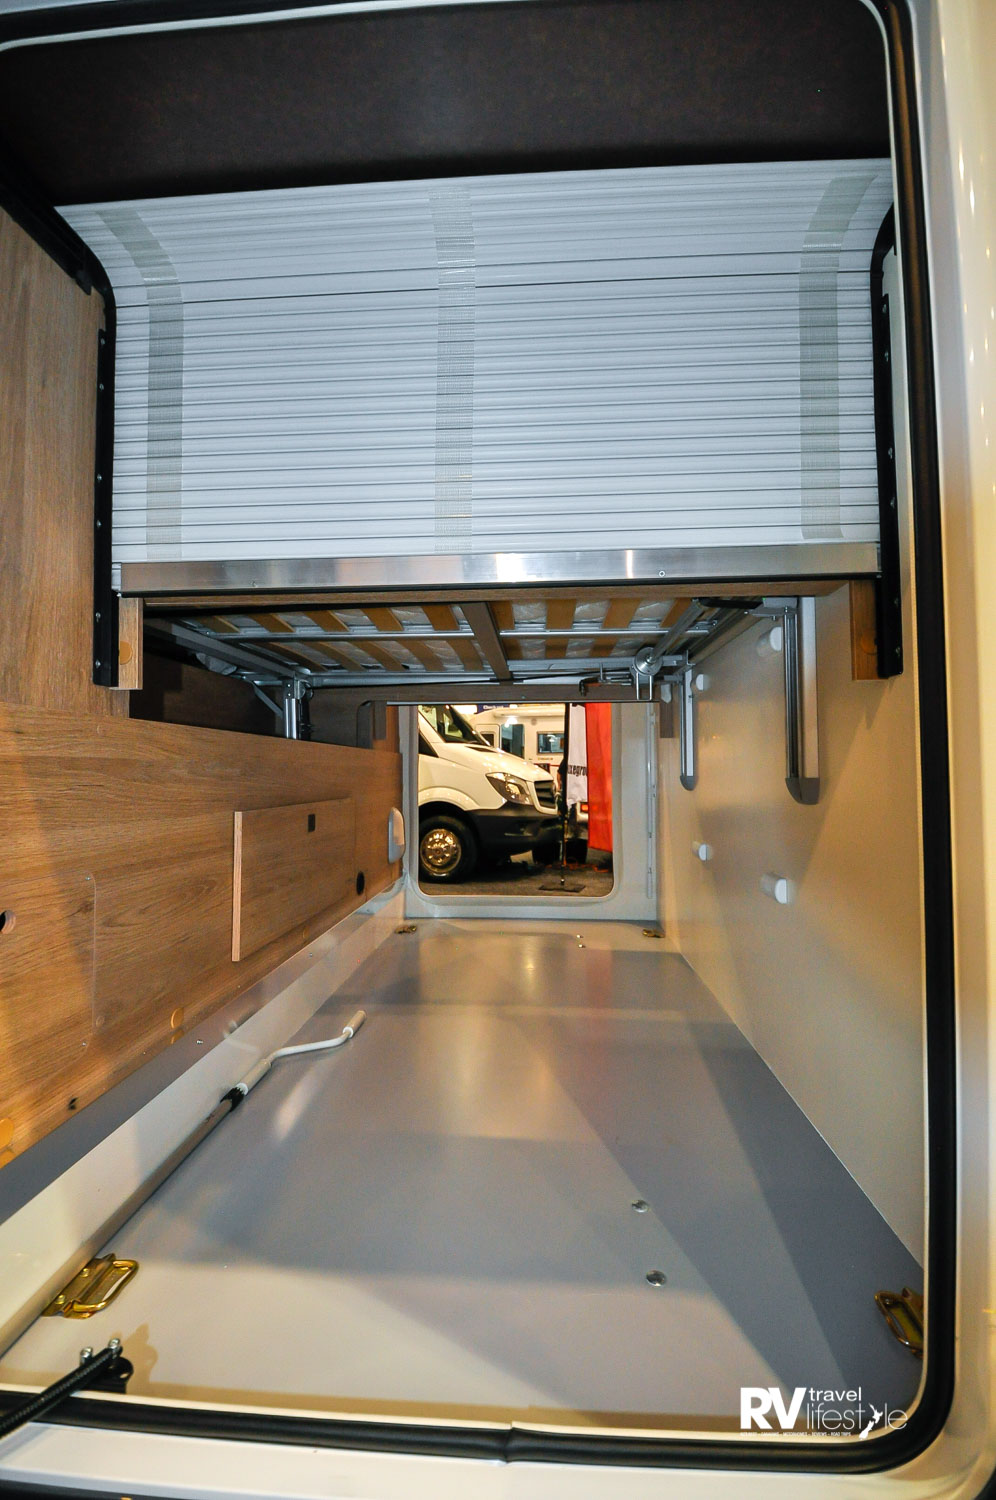 Large exterior rear boot storage, adjustable by lowering or raising the bed above. You can fit large items and secure them in here